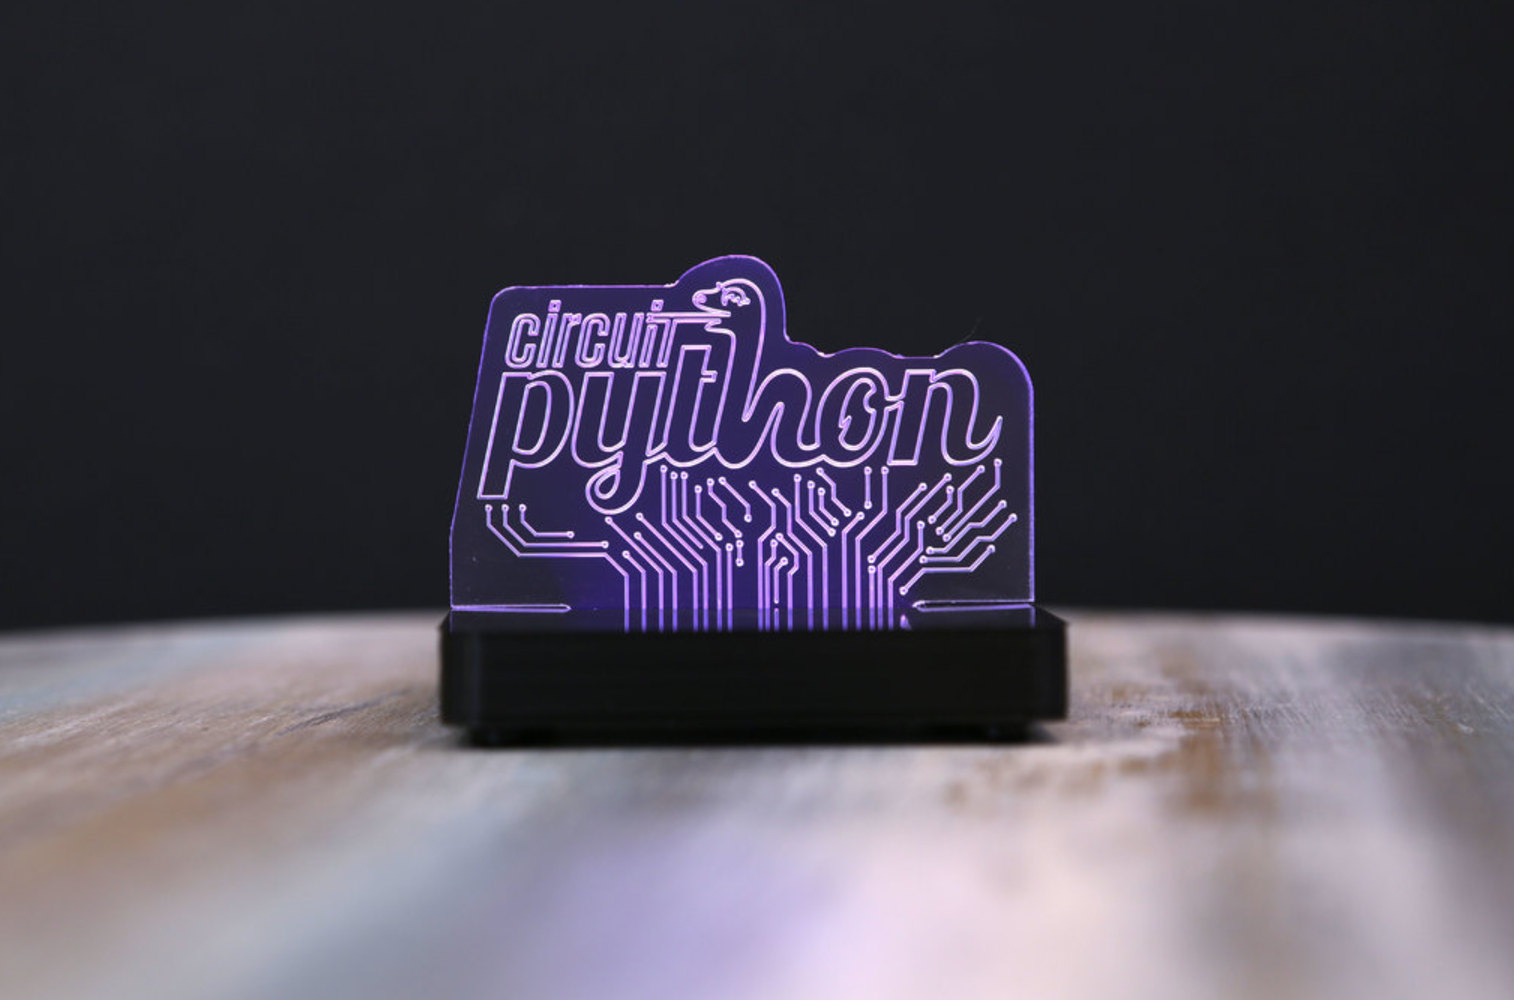 Capture d'écran 2017-09-01 à 10.48.28.png Download free STL file LED Acrylic Sign with NeoPixels and Circuit Python • Model to 3D print, Adafruit